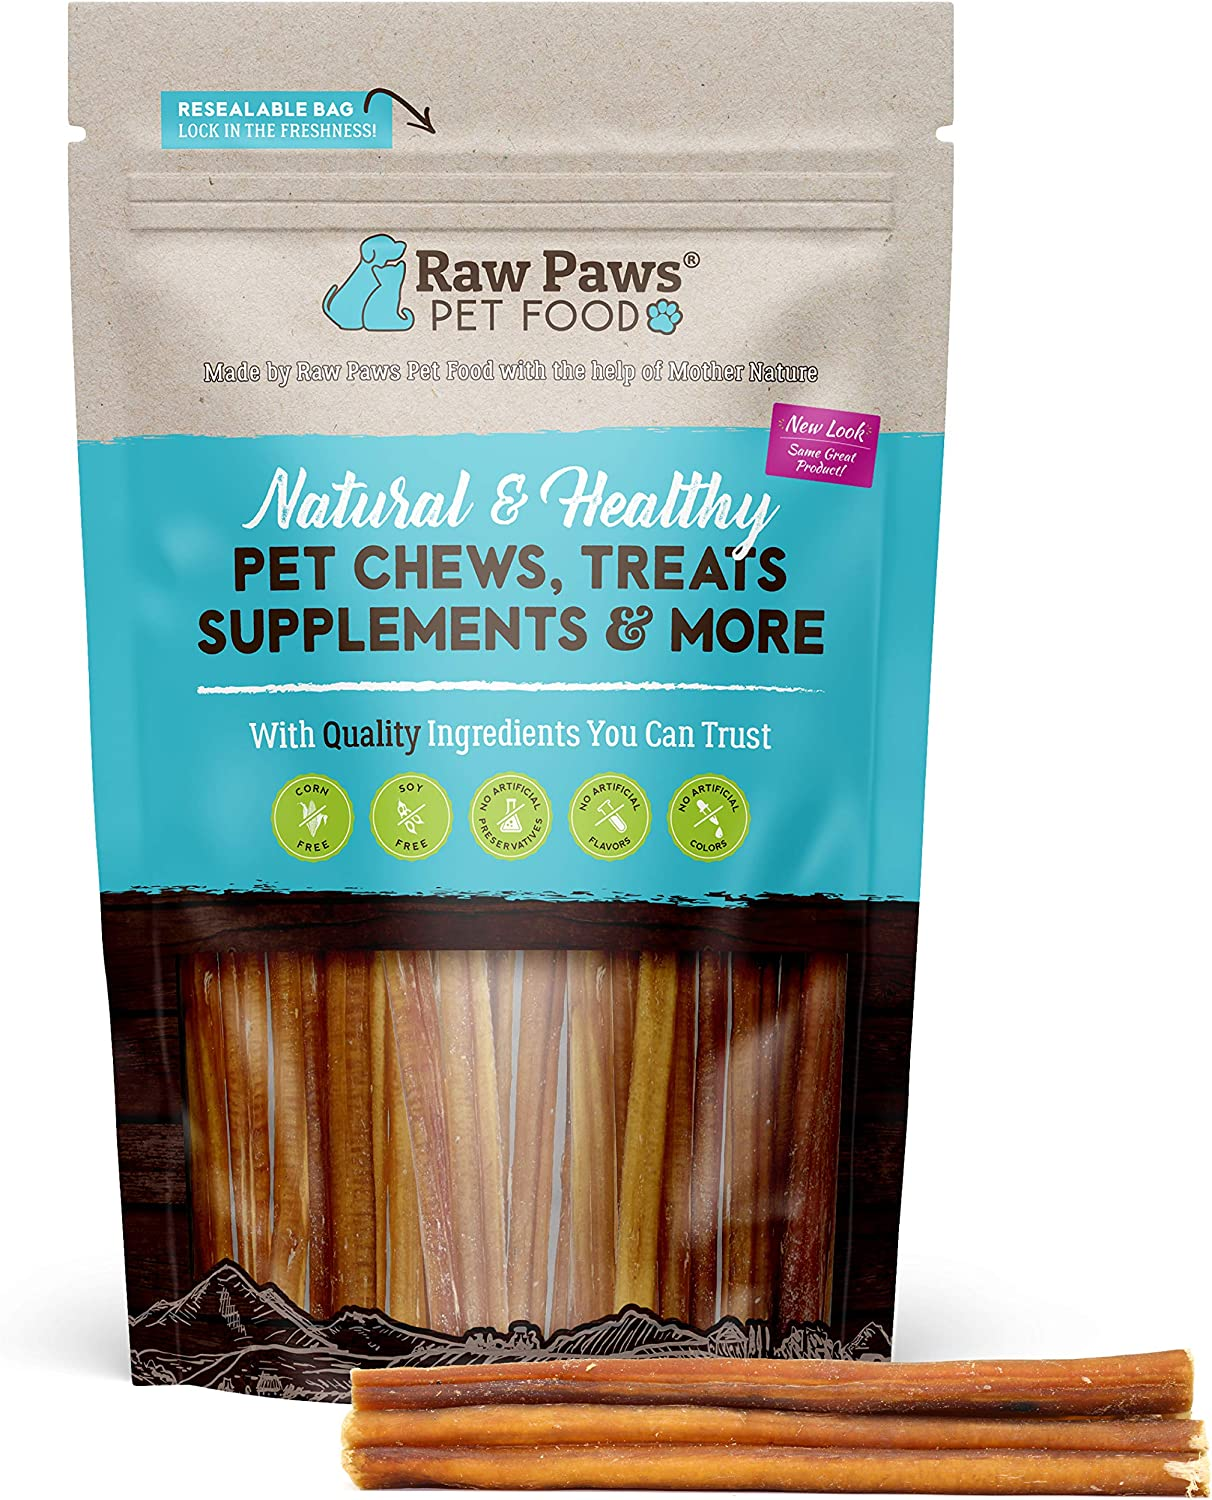 Raw Paws Thin Bully Sticks 6 inch - Small Bully Sticks for Puppies - Grass Fed, No Hormones, Free Range Cows - Bull Pizzle Sticks - Puppy Bully Bones for Small Dogs - Skinny Steer Sticks